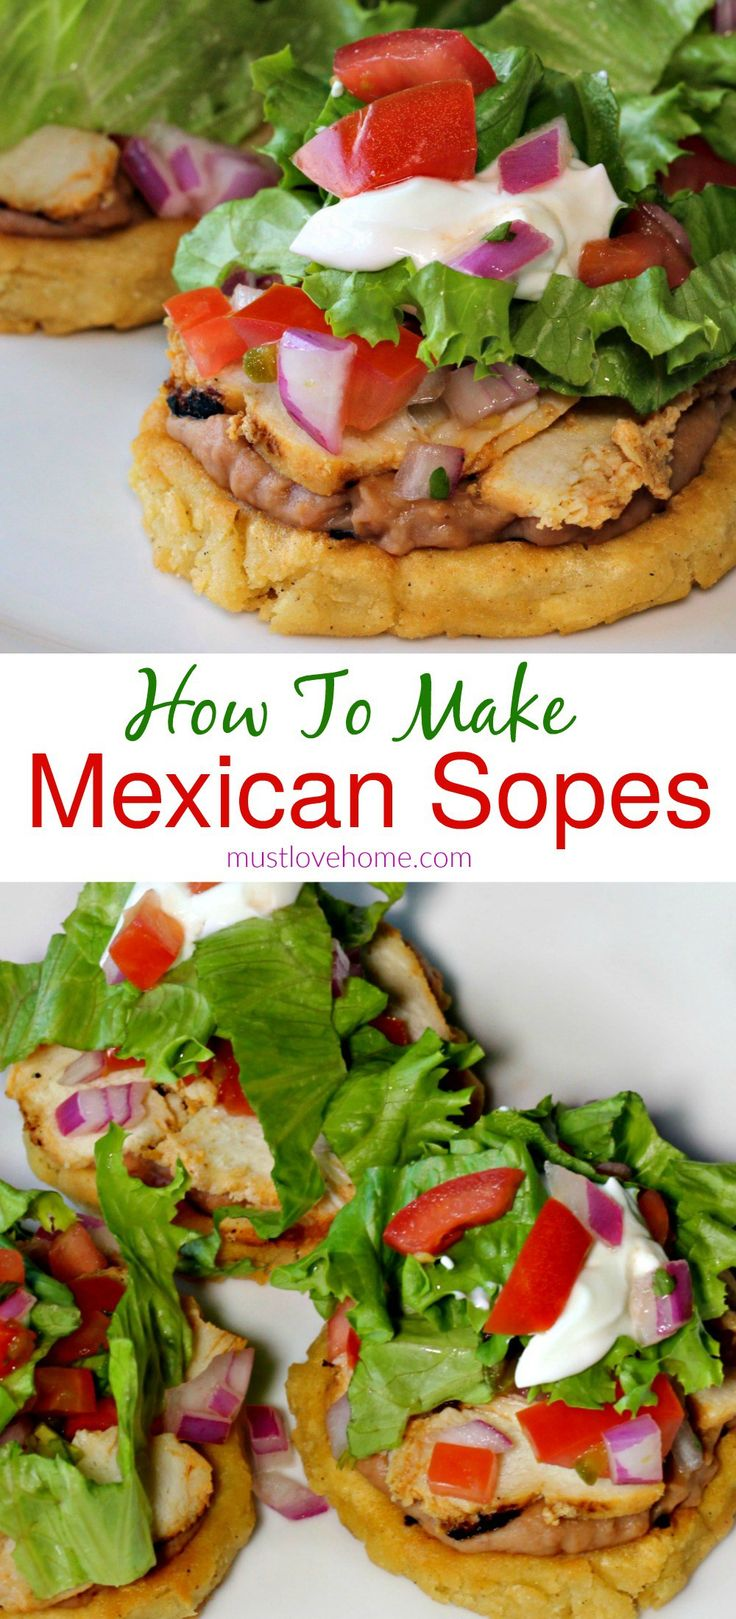 Easy Mexican Sopes are fresh and delicious appetizers that will be a hit at your next party - top them with your favorites like beans, cheese and sour cream!